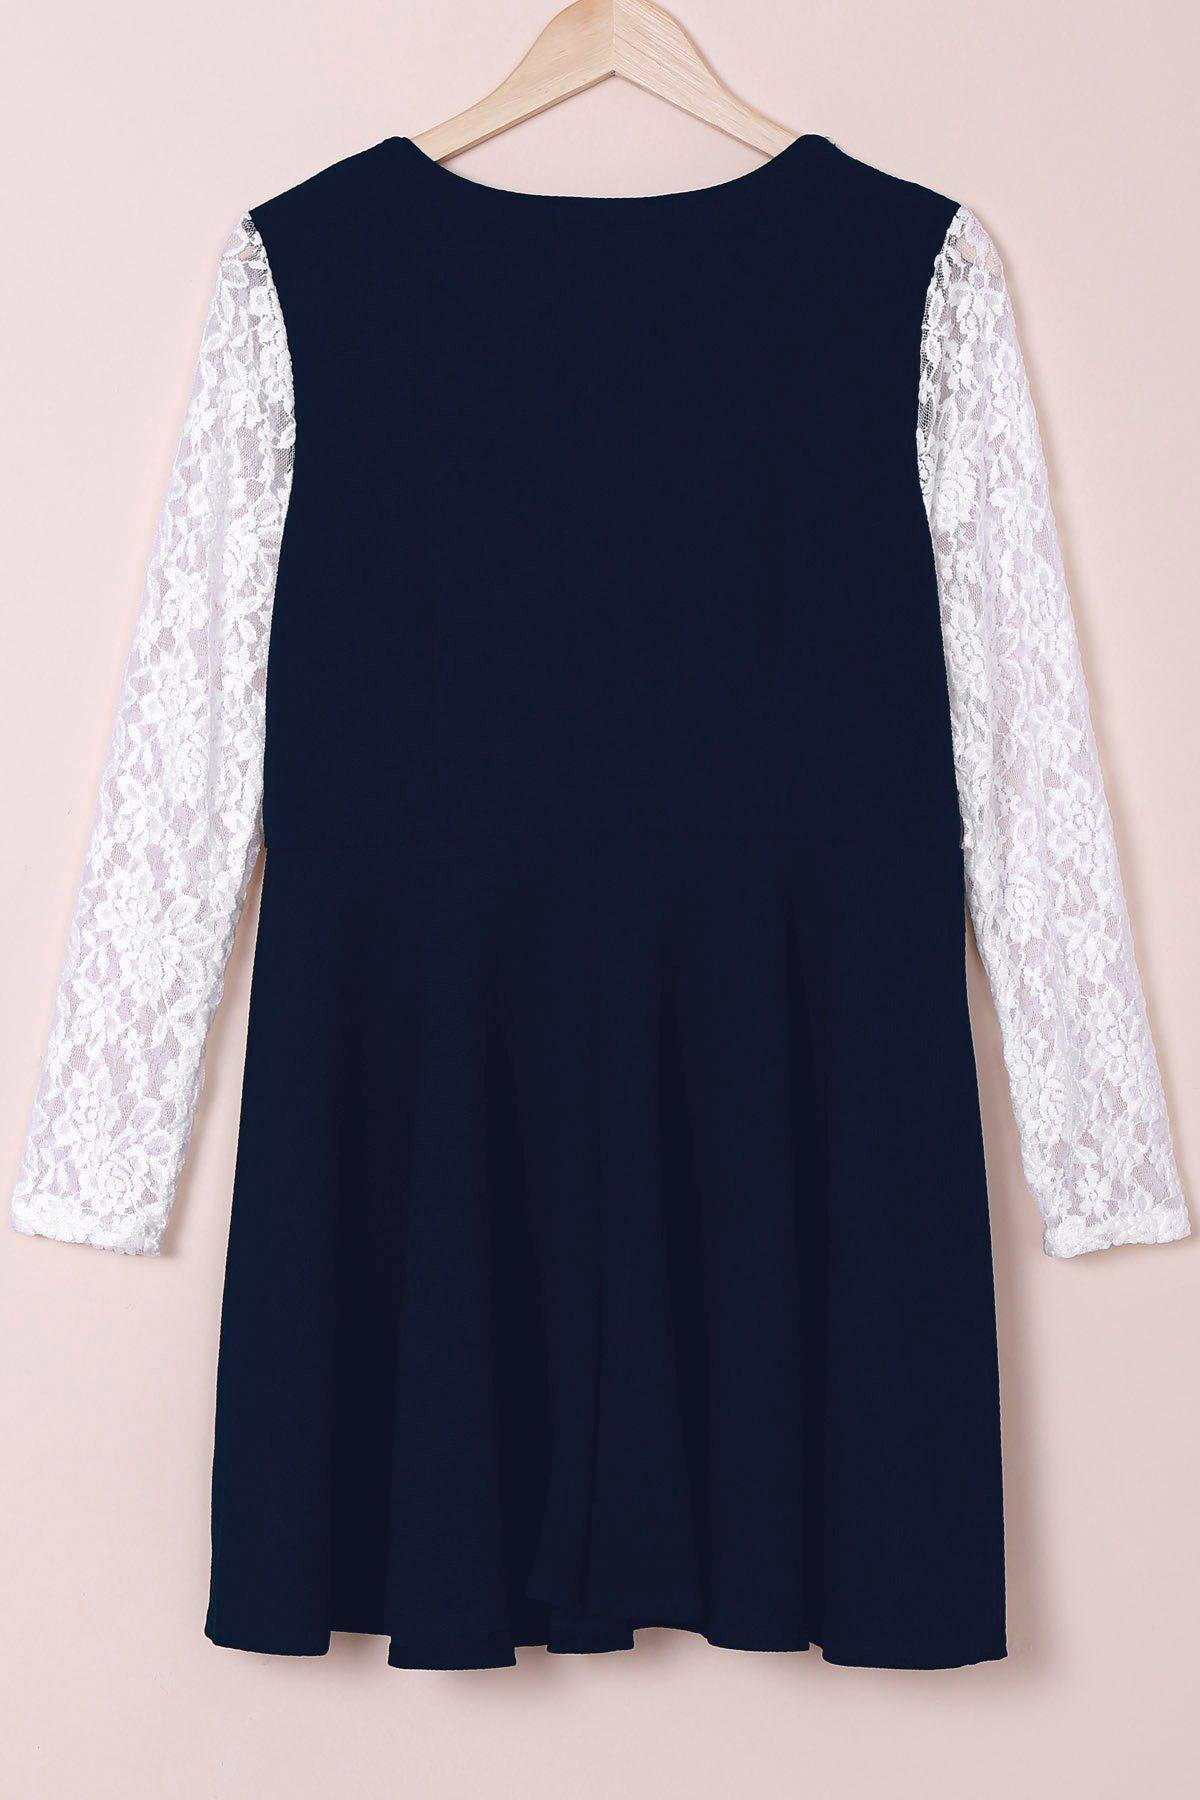 Stylish Round Collar Lace Splicing Plus Size Long Sleeve Women's Dress - DEEP BLUE XL